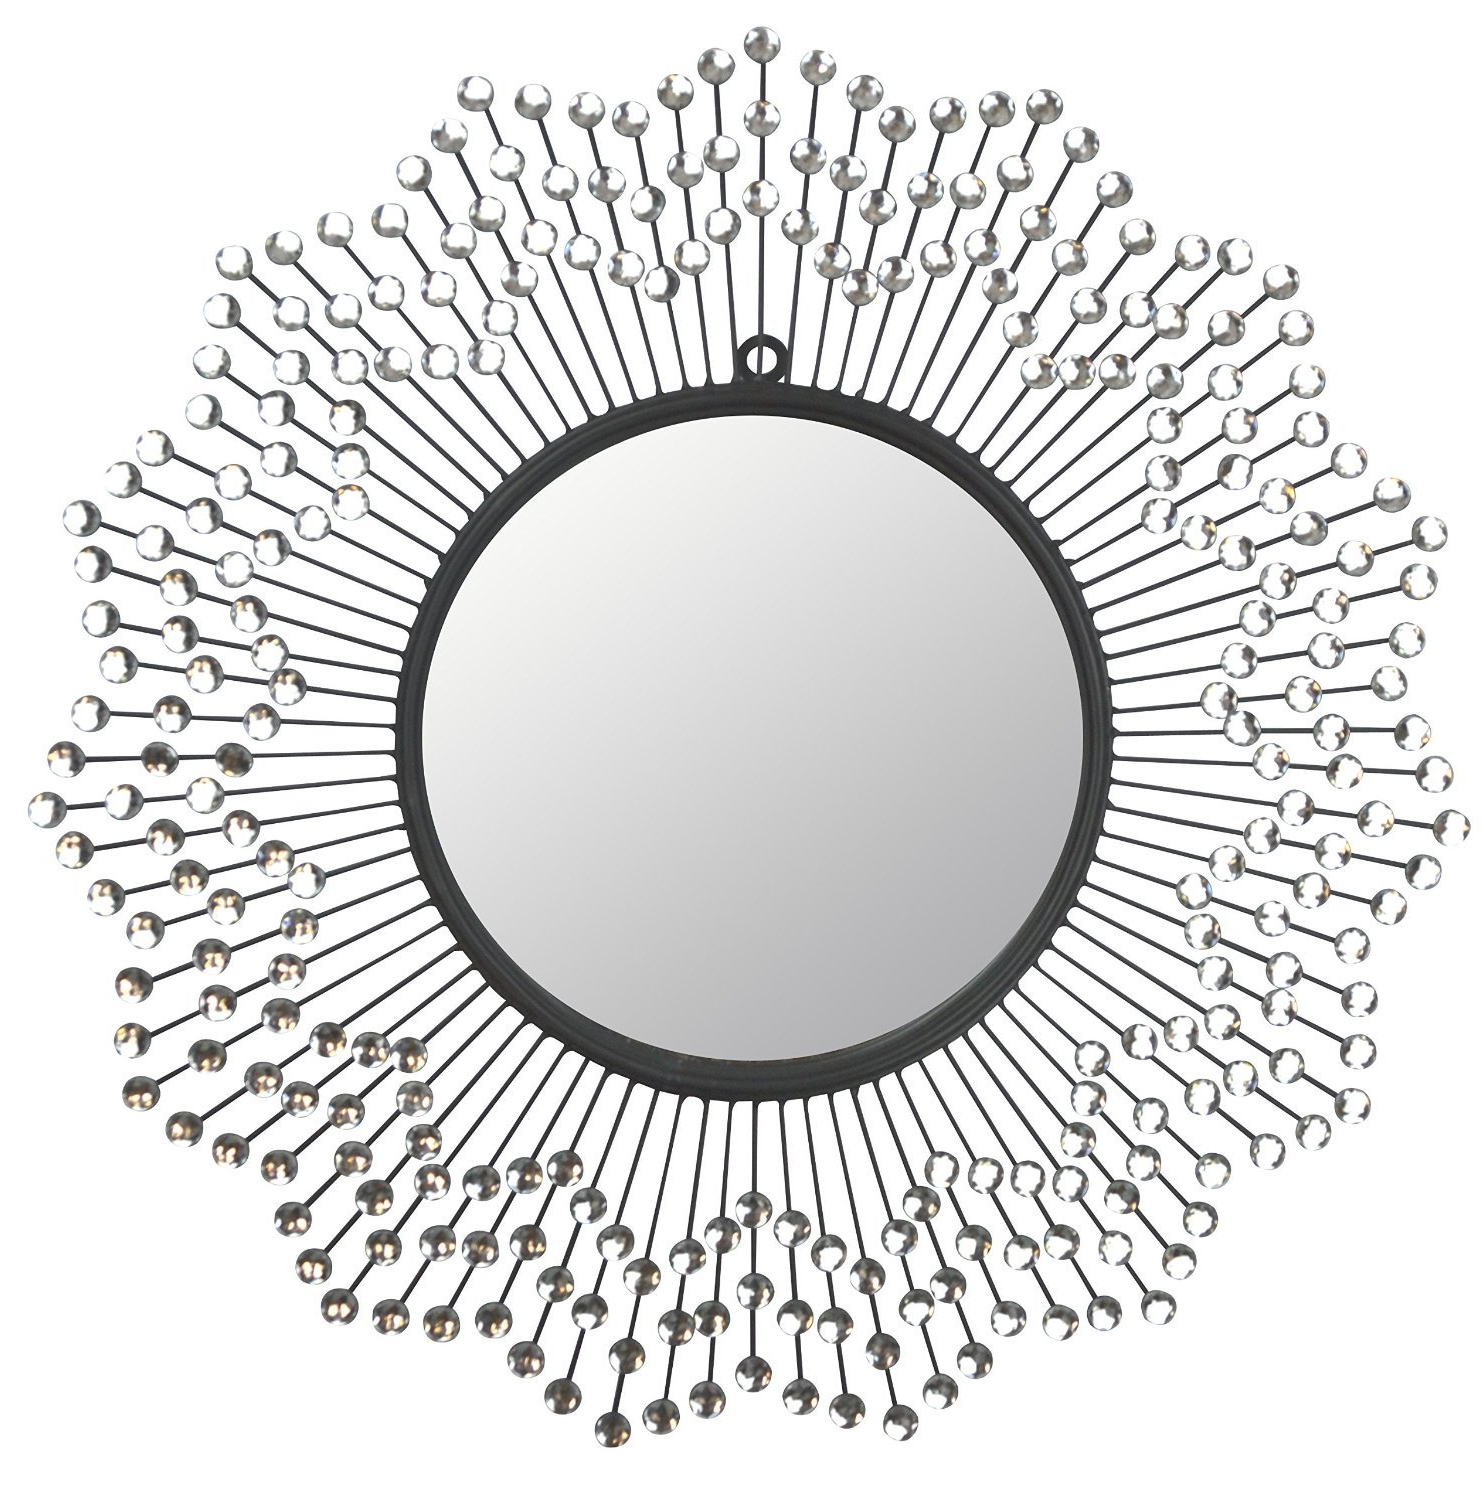 "White Round Wall Mirrors In Newest Lulu Décor, Celebration Metal Wall Mirror, Frame 24"", Round Decorative Mirror For Living Room And Office Space (View 18 of 20)"